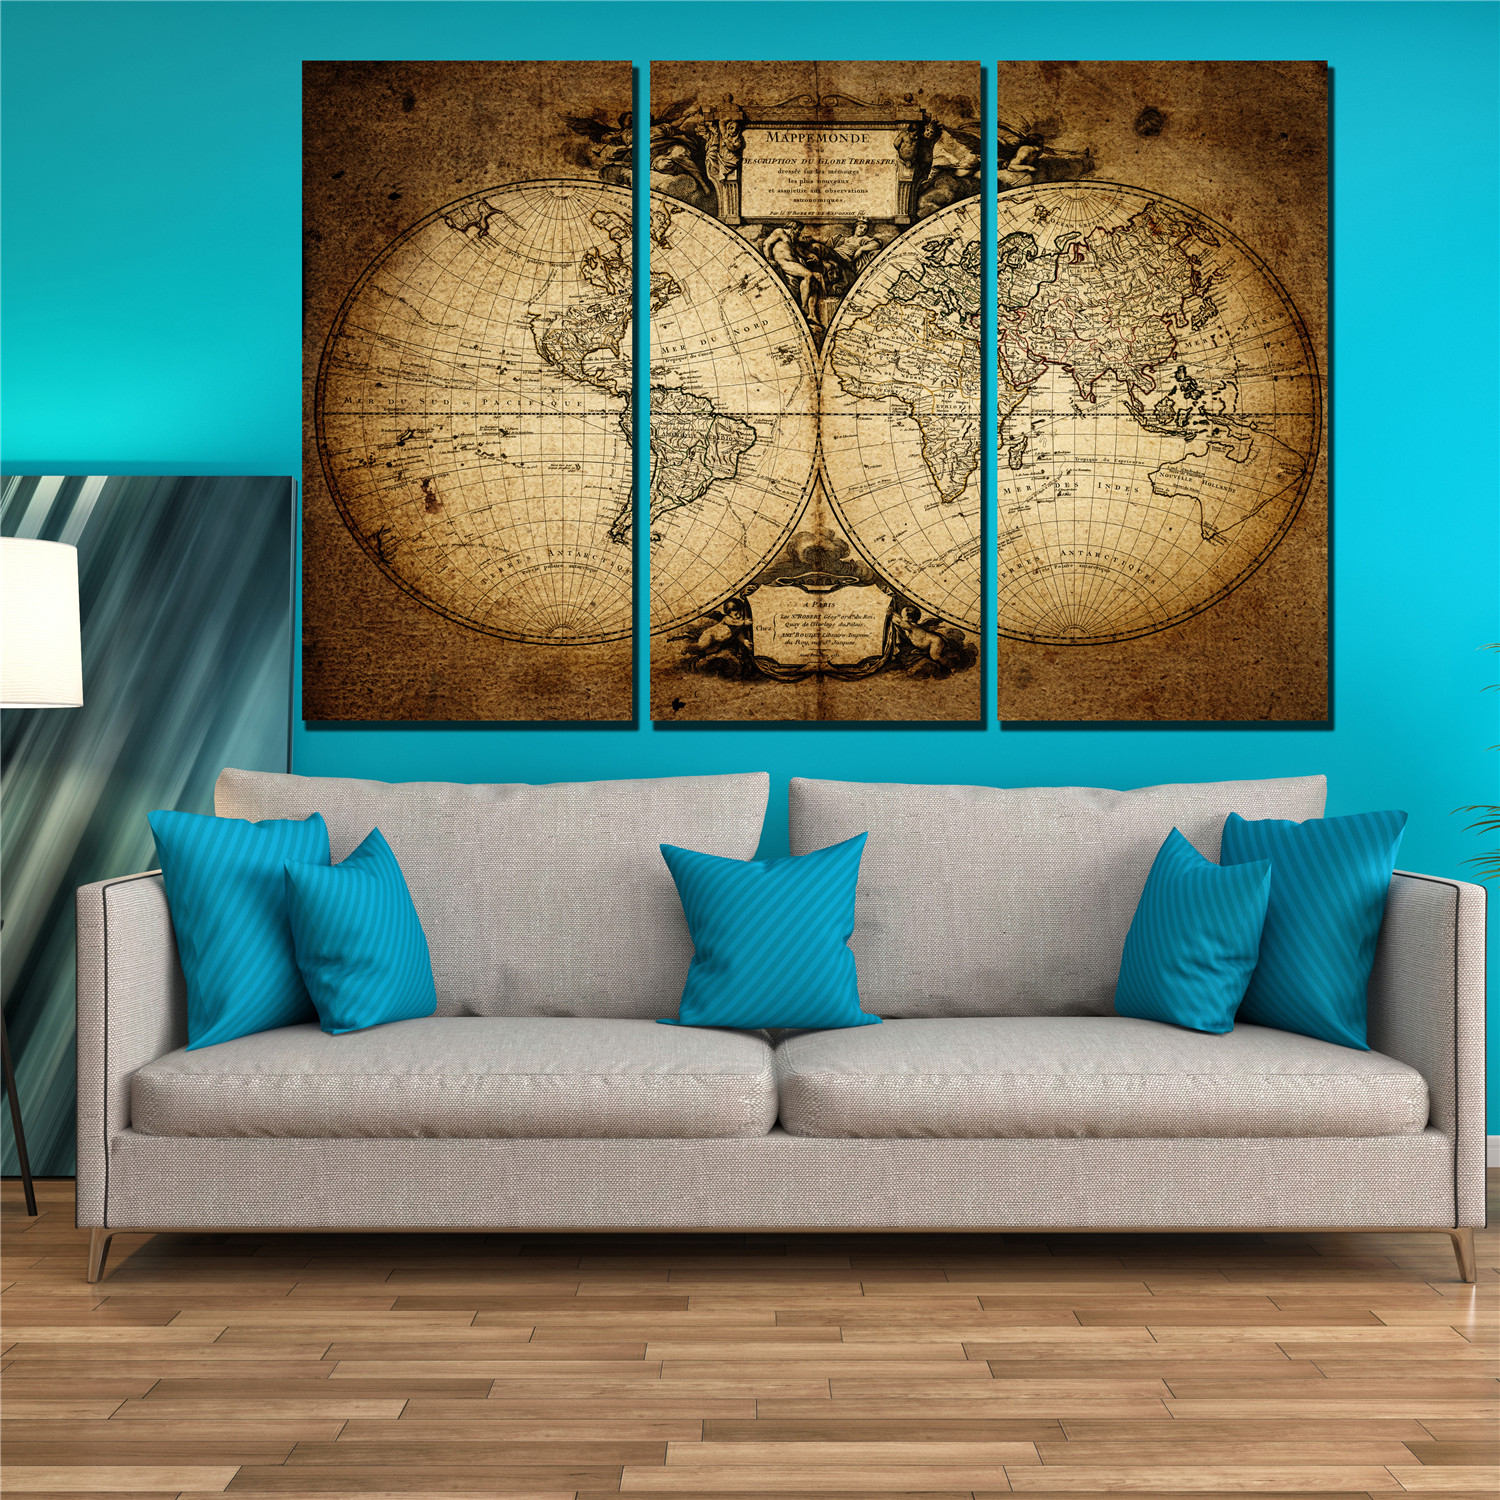 Aliexpress Com Buy Unframed 3 Panel Vintage World Map: 3 Panel Canvas Wall Art Canvas Print Vintage The World Map